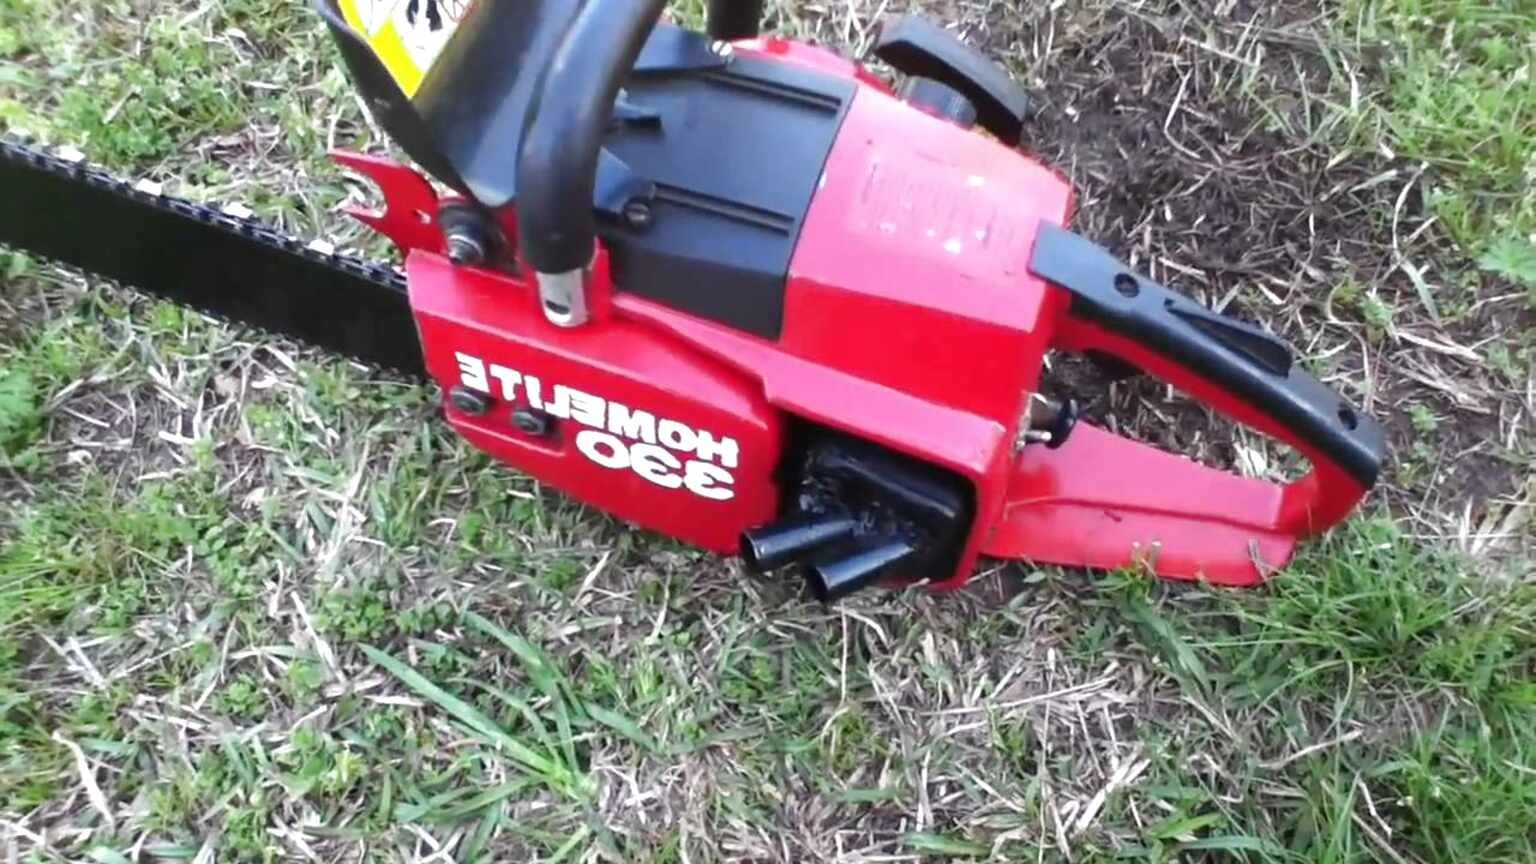 homelite 330 chainsaw for sale